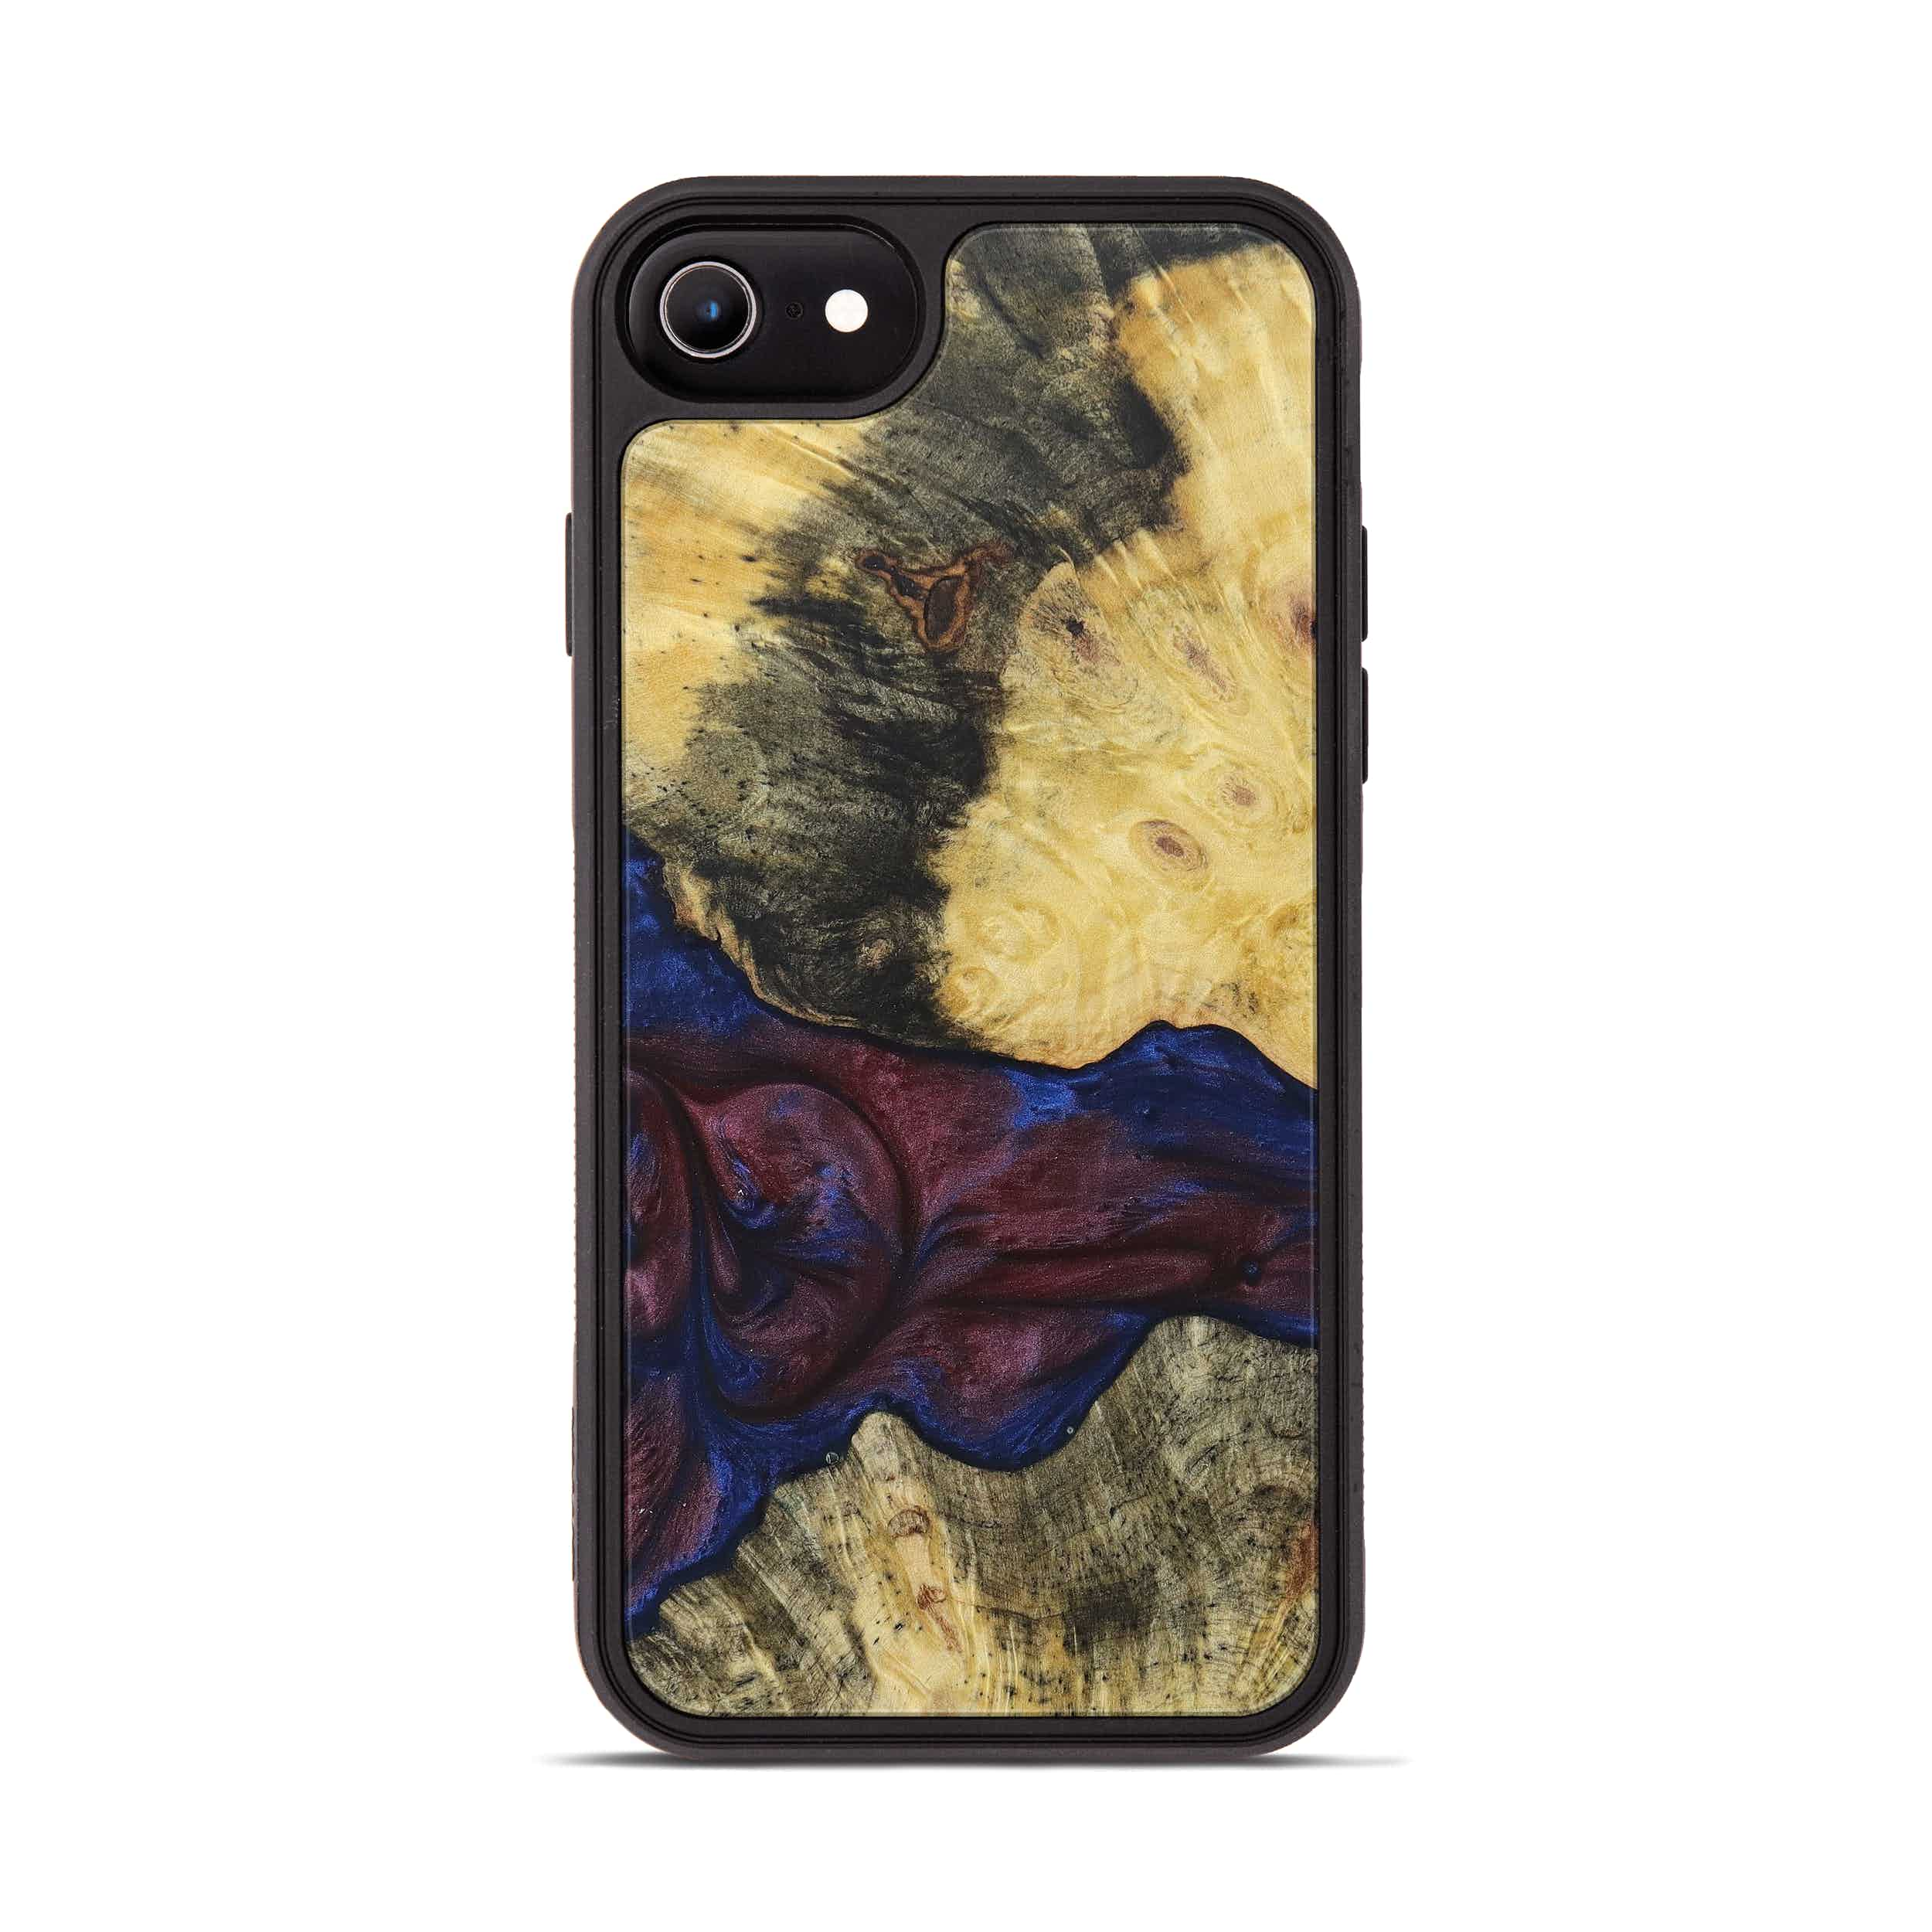 iPhone 8 Wood+Resin Phone Case - Nannette (Blue & Red, 394798)